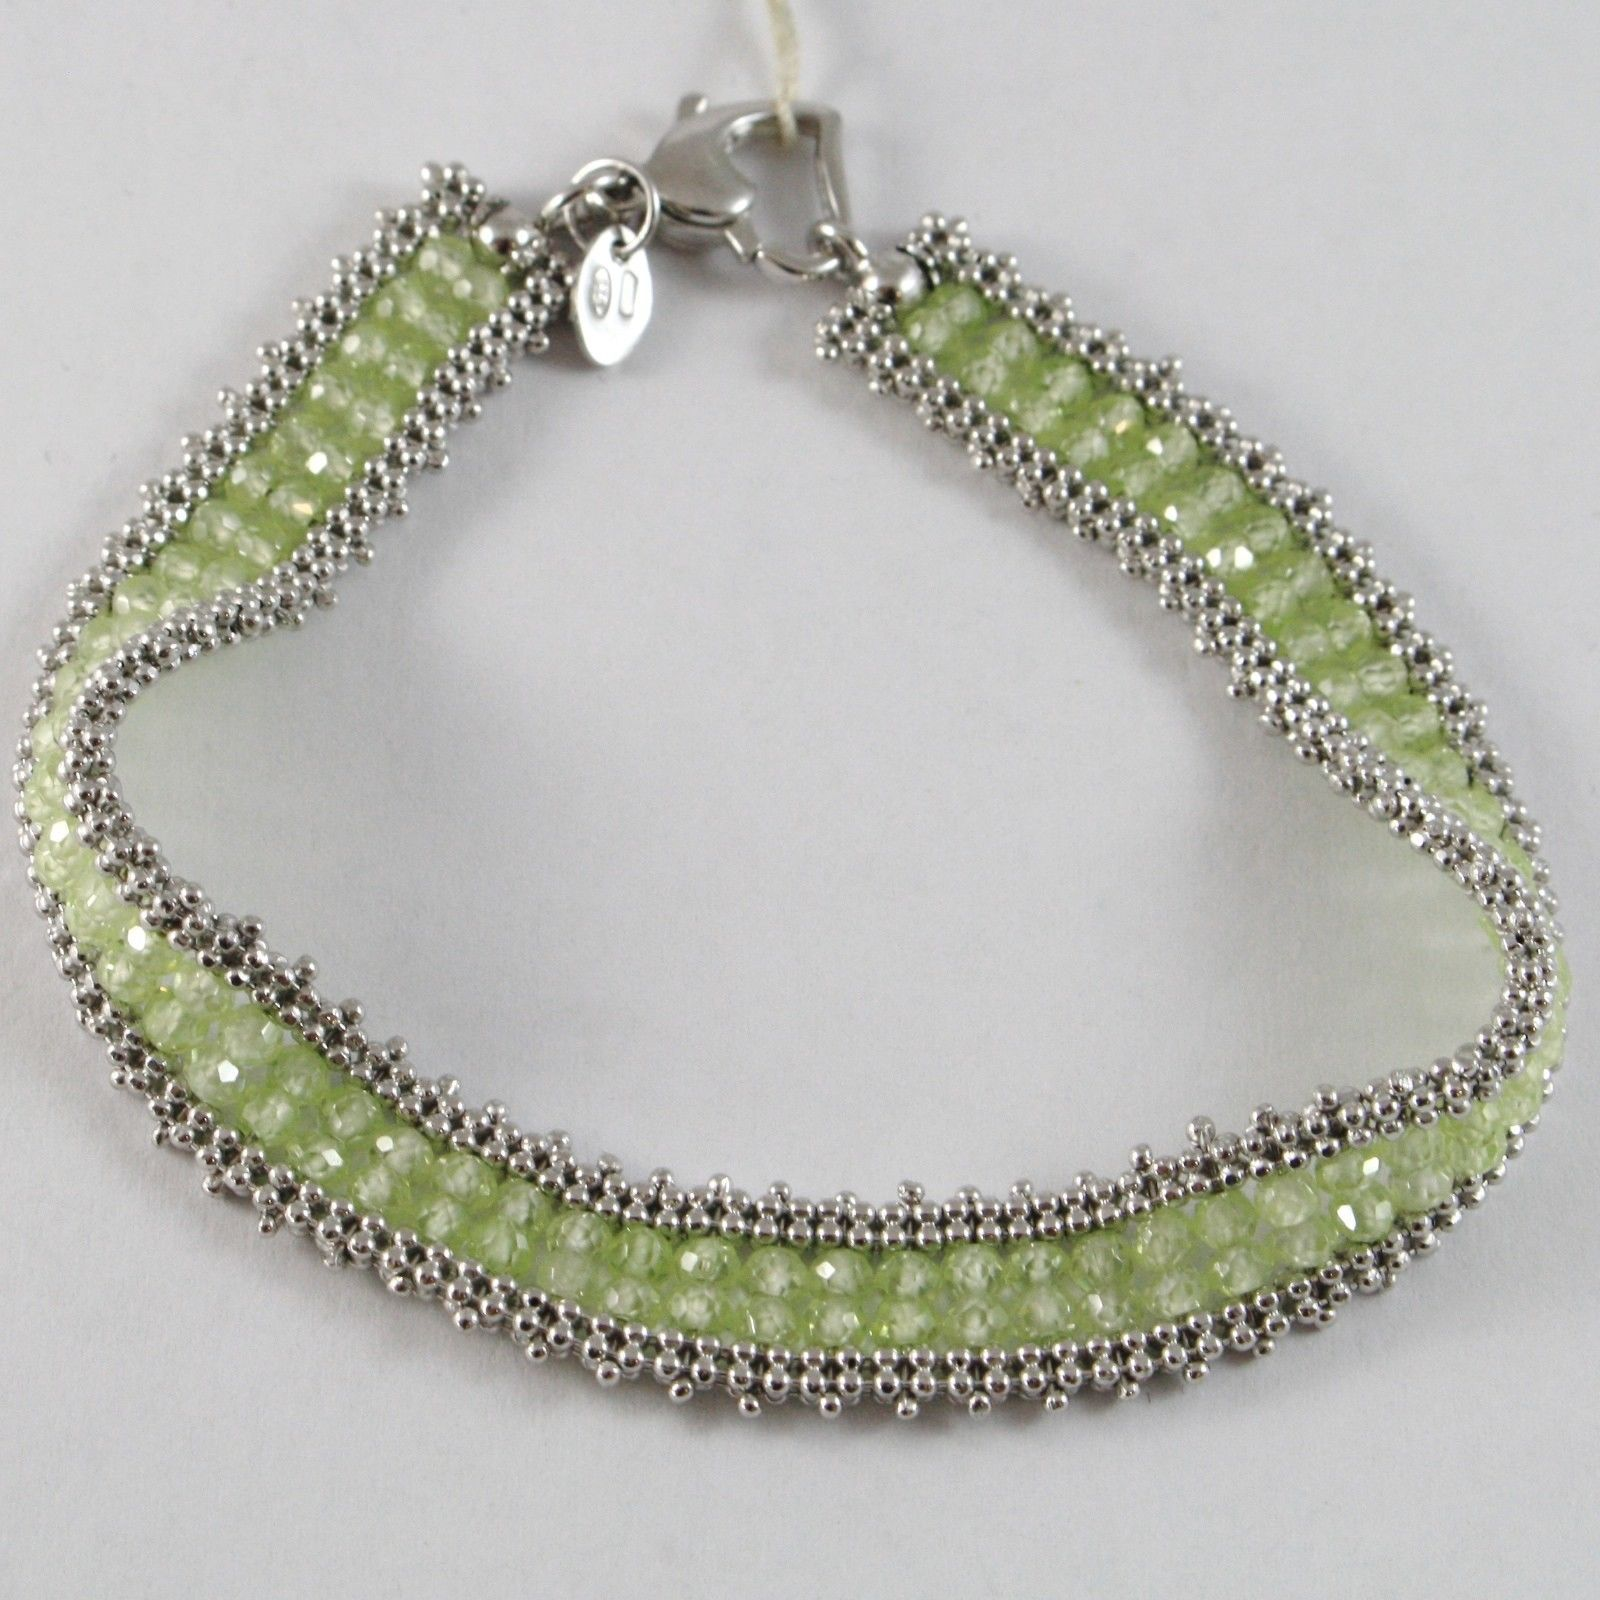 925 STERLING SILVER TENNIS BRACELET WITH PERIDOT, MULTI WIRE AND BALLS, ITALY